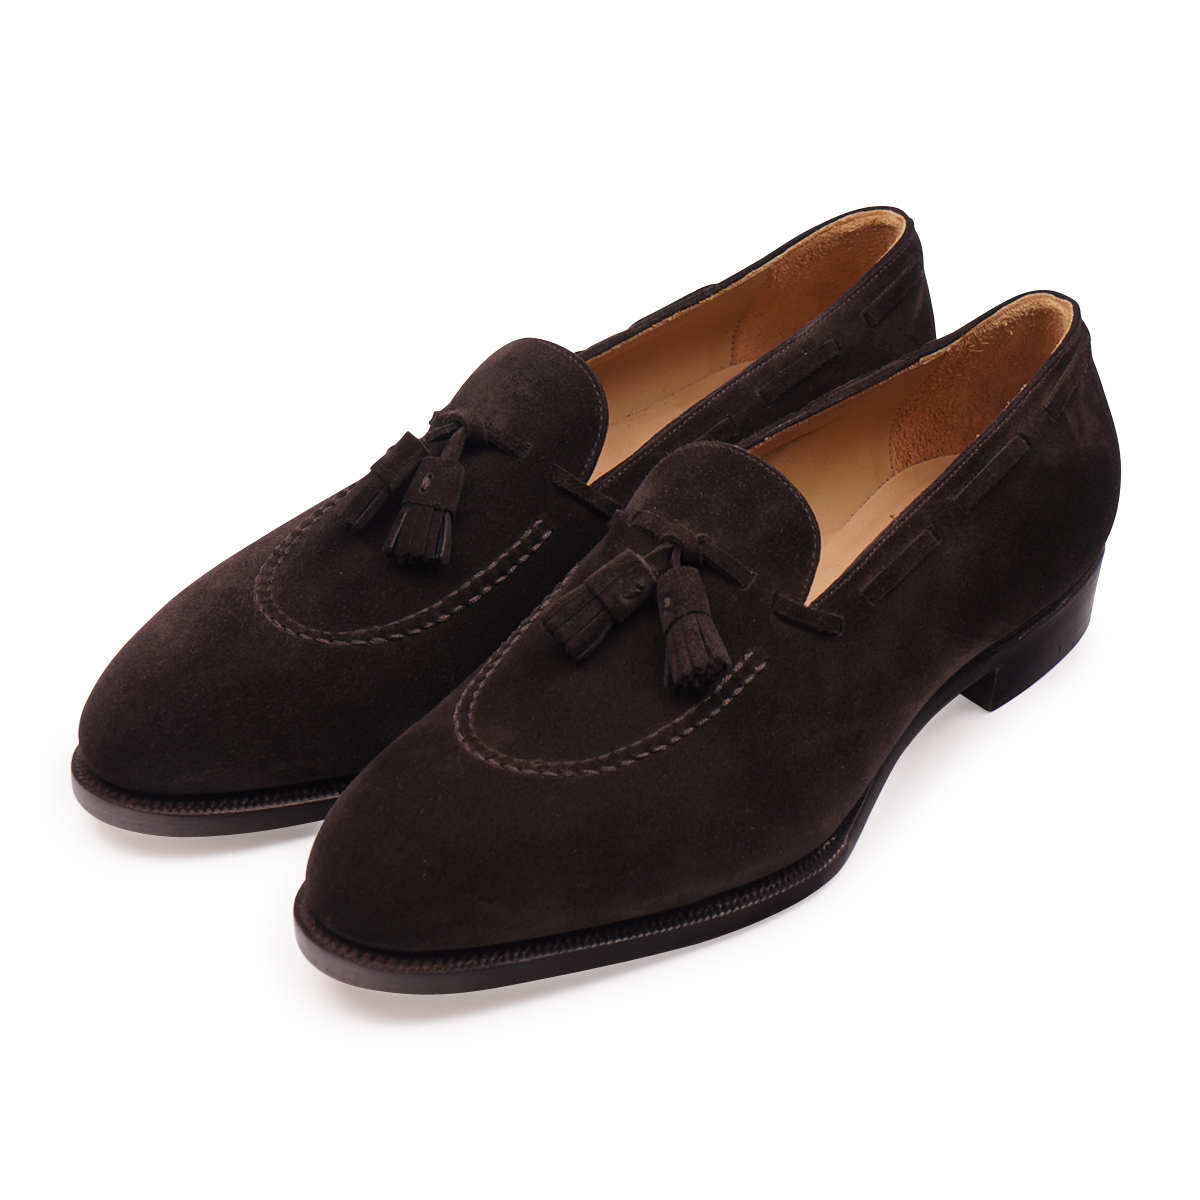 Dark Brown Suede Apron Tassel Loafers